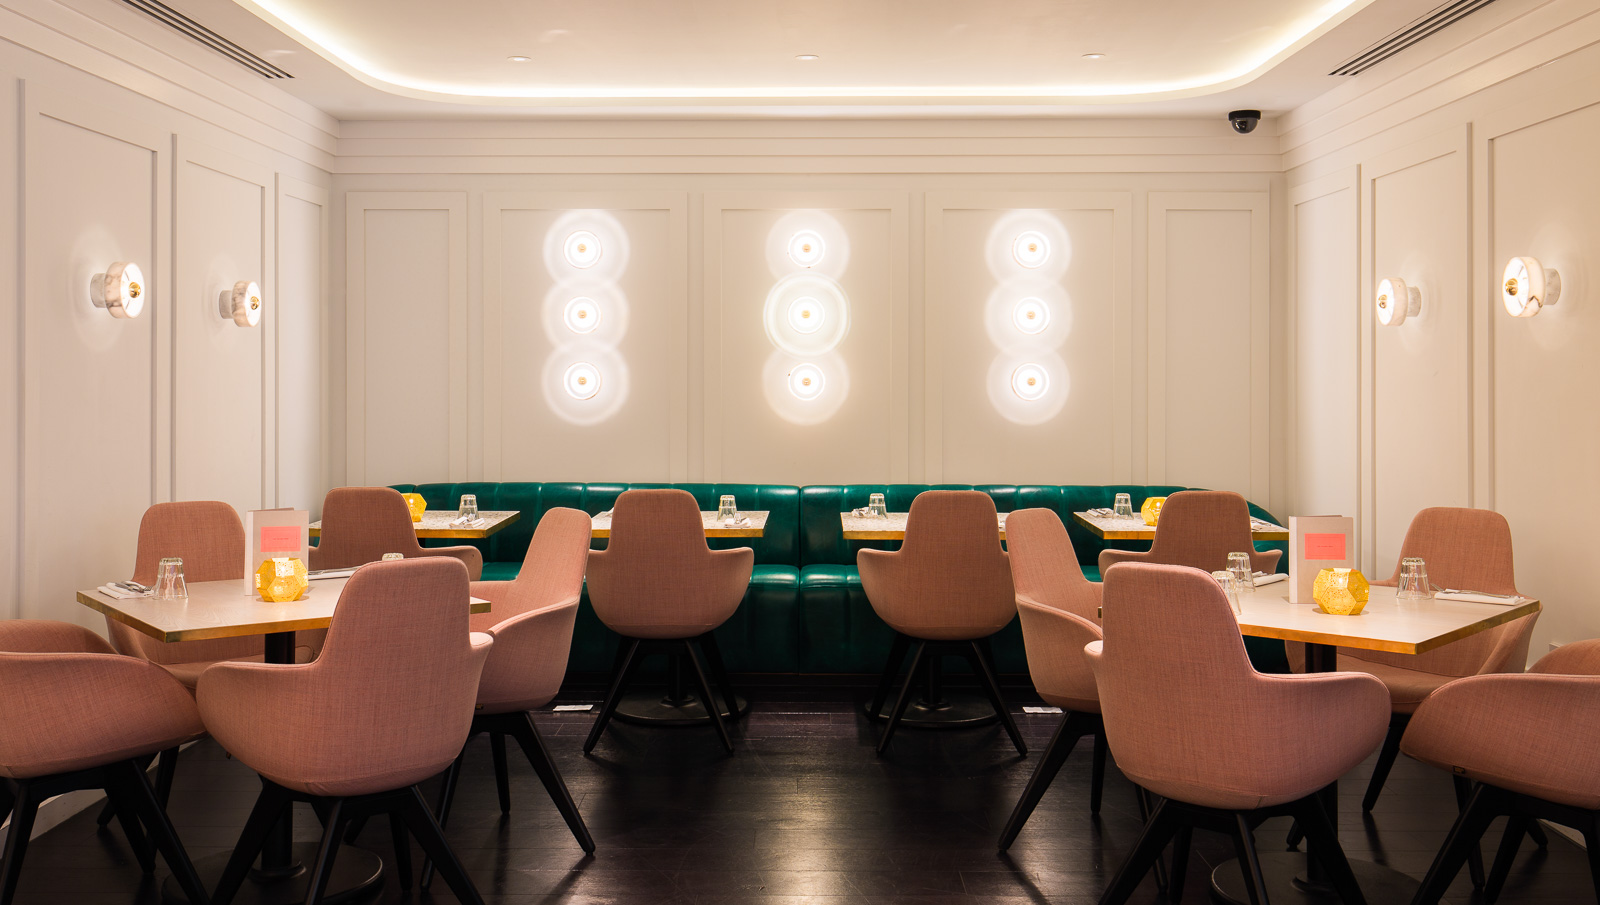 Meet The Restaurant to Eat in London with Best Lighting Designs 1 lighting design Meet The Restaurant to Eat in London with Best Lighting Designs Meet The Restaurant to Eat in London with Best Lighting Designs 2